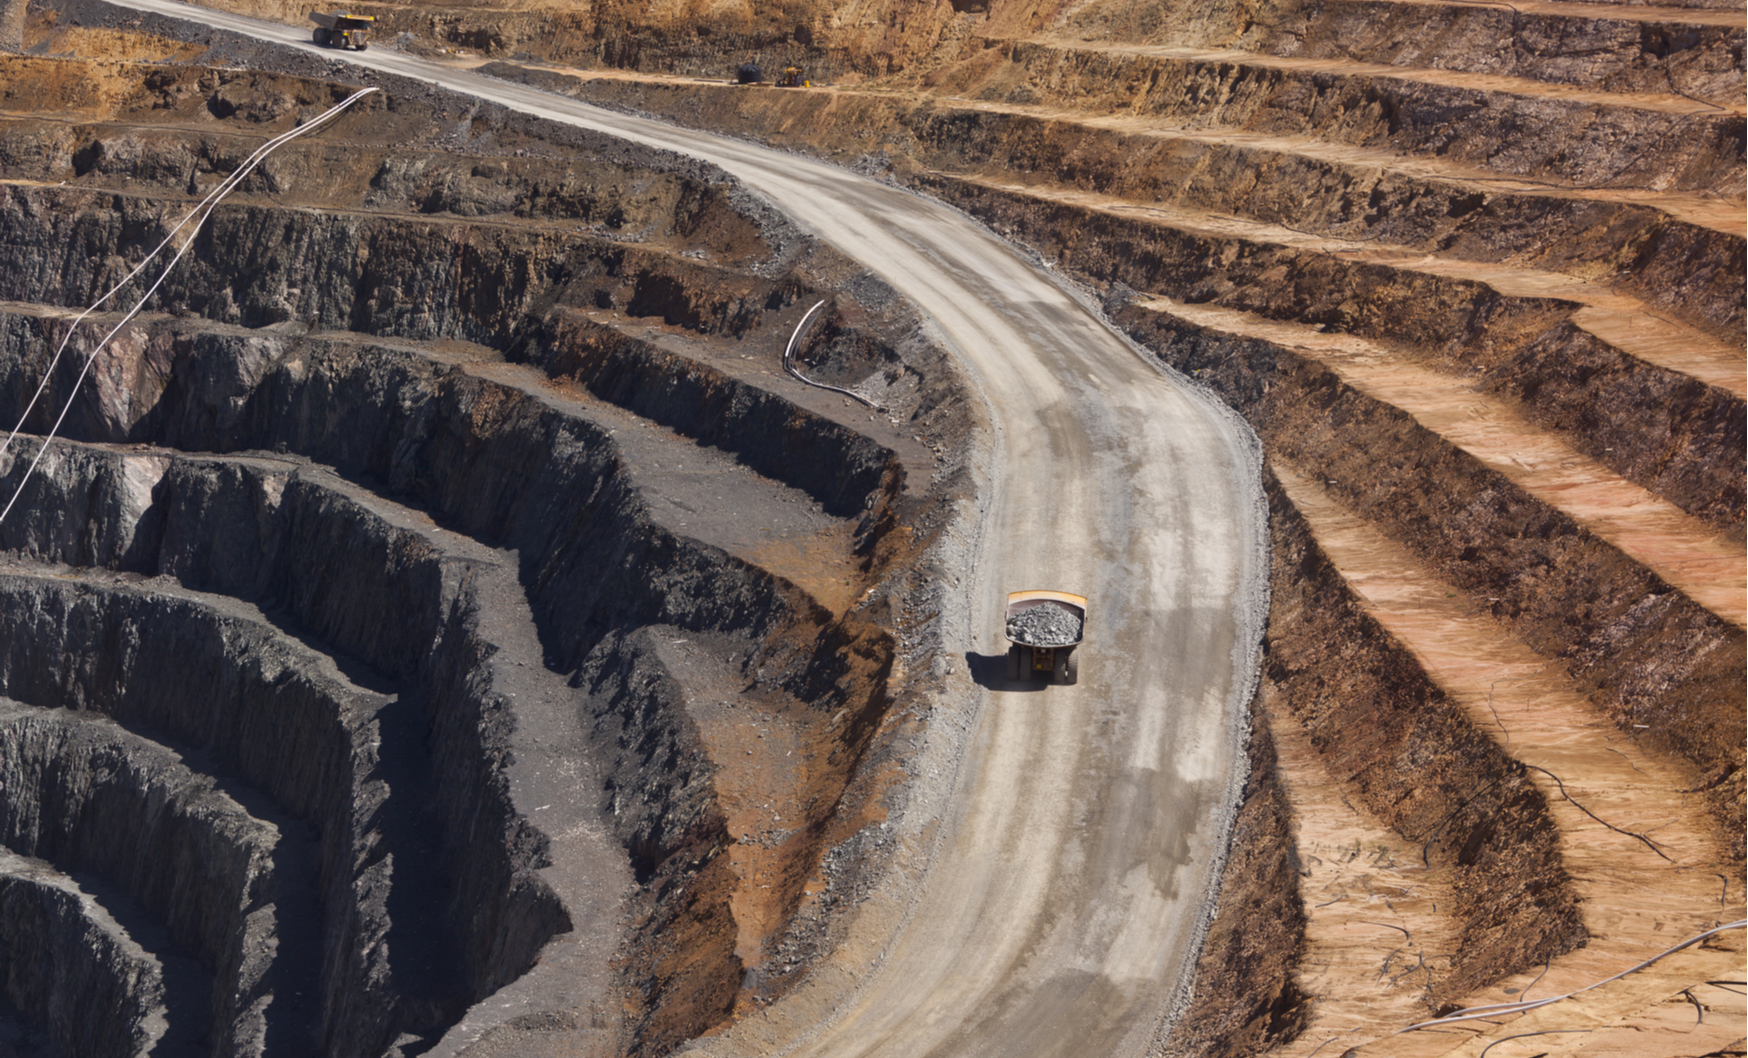 Gold Mining Earnings Roundup: Newmont Goldcorp, Barrick Gold, B2Gold